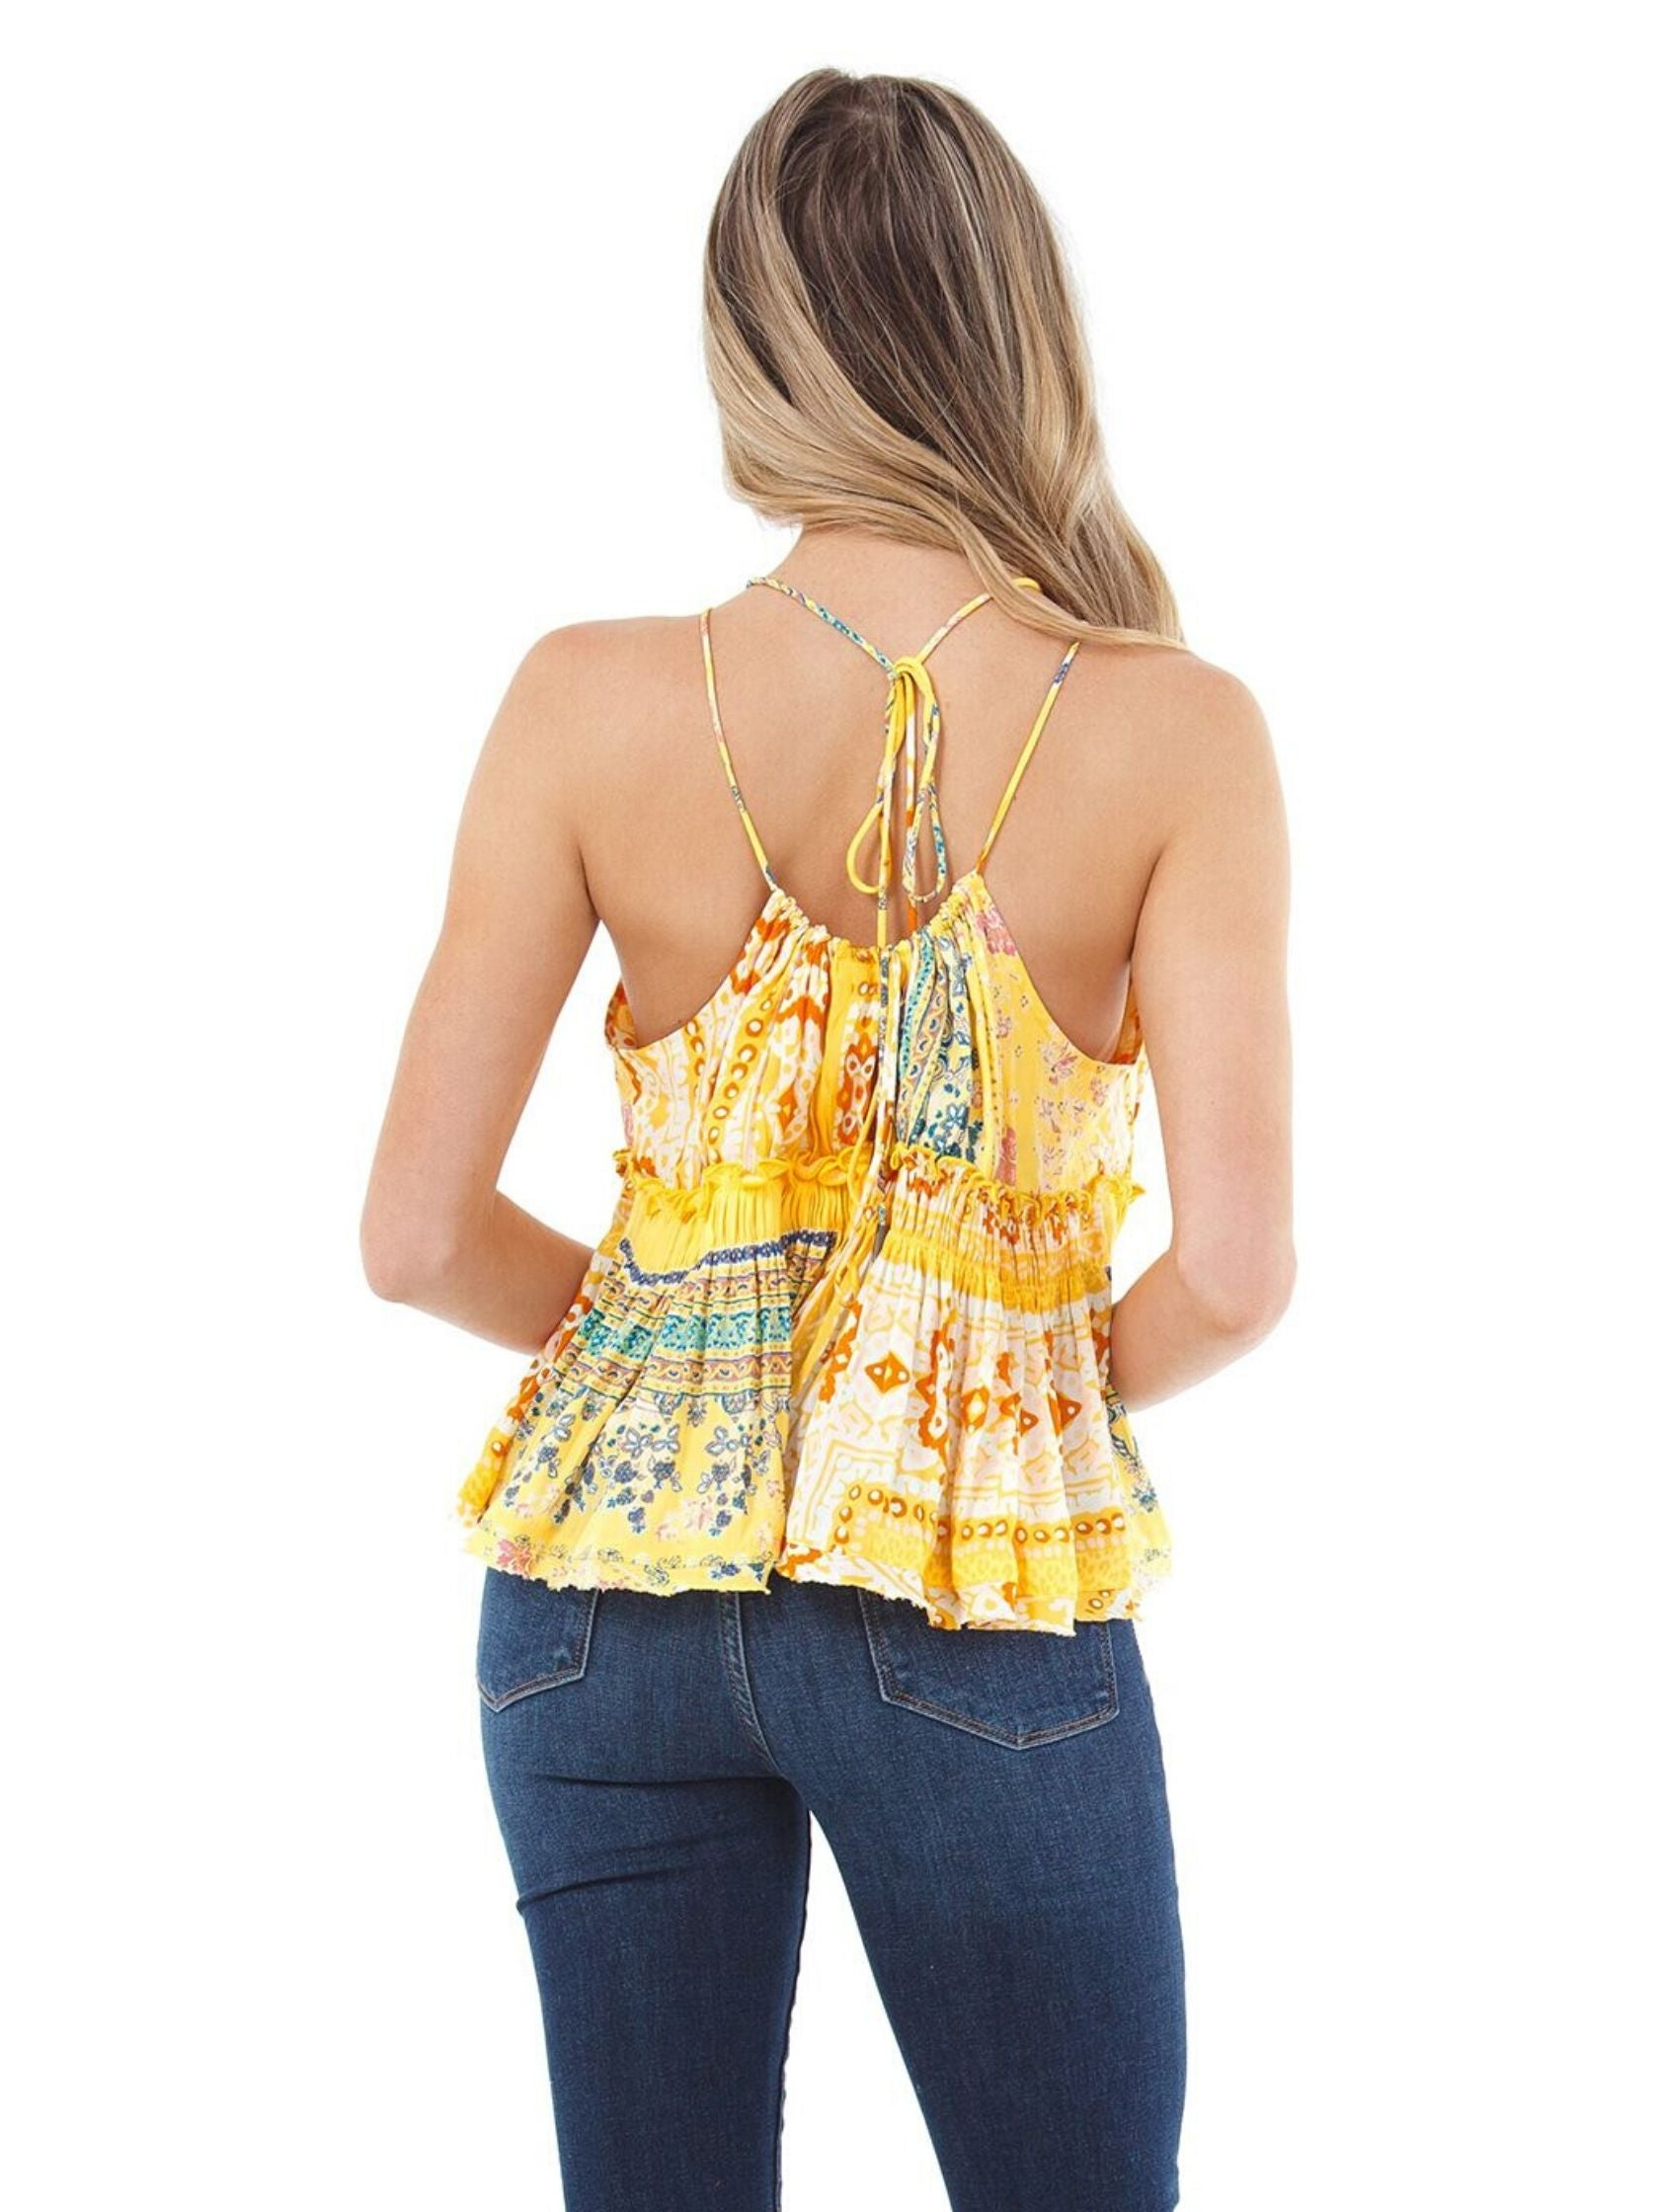 Women outfit in a cami rental from Free People called Bellini Patchwork Tank